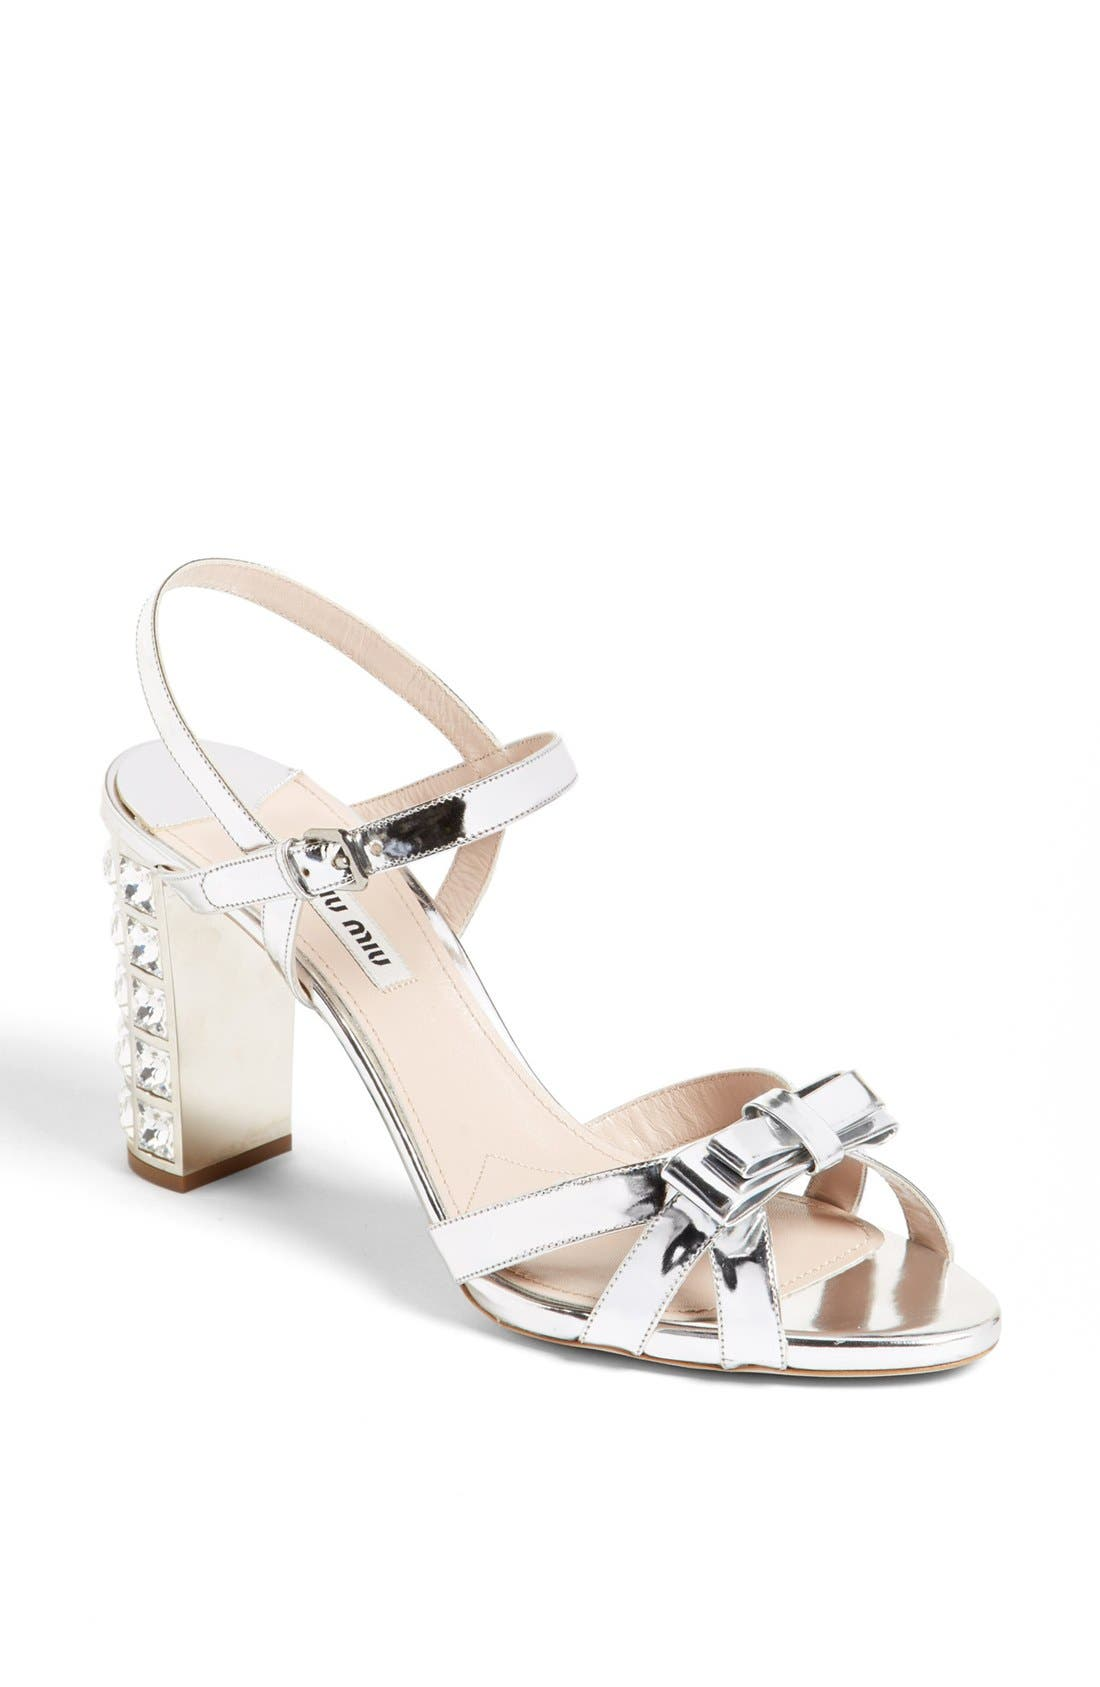 Alternate Image 1 Selected - Miu Miu Bow Ankle Strap Sandal